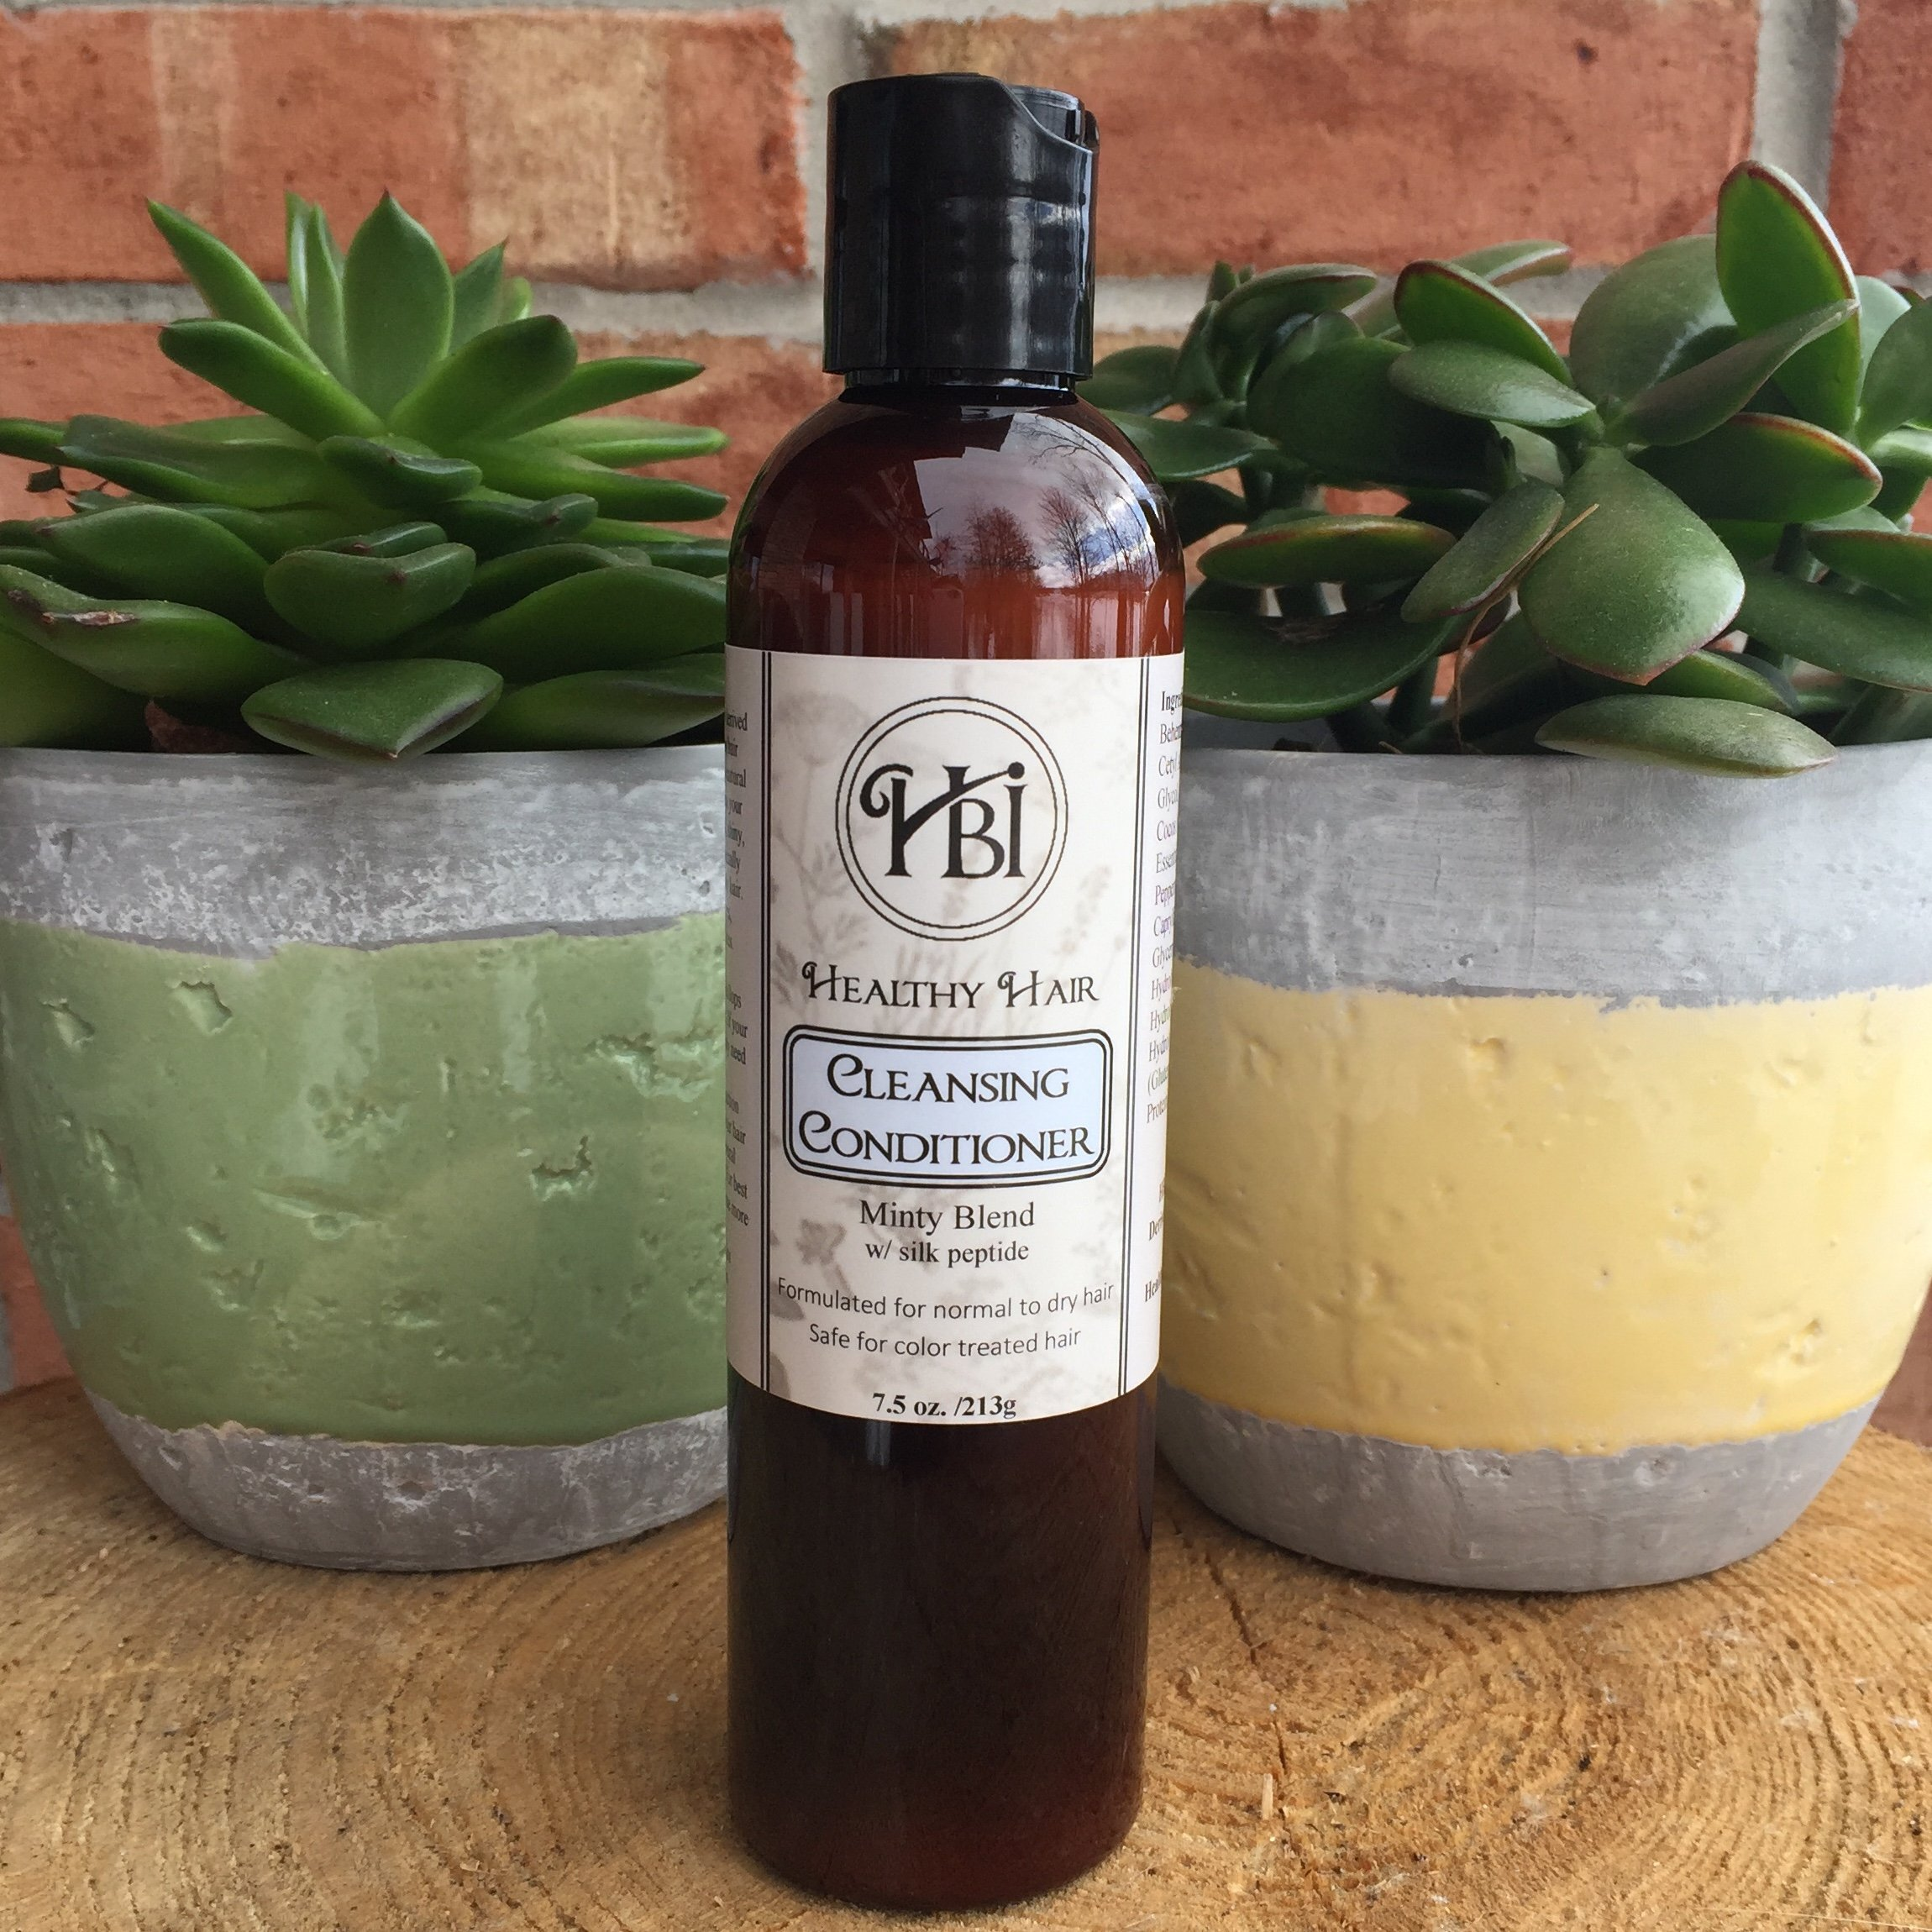 Healthy Hair Cleansing Conditioner Minty Blend 7.5 oz